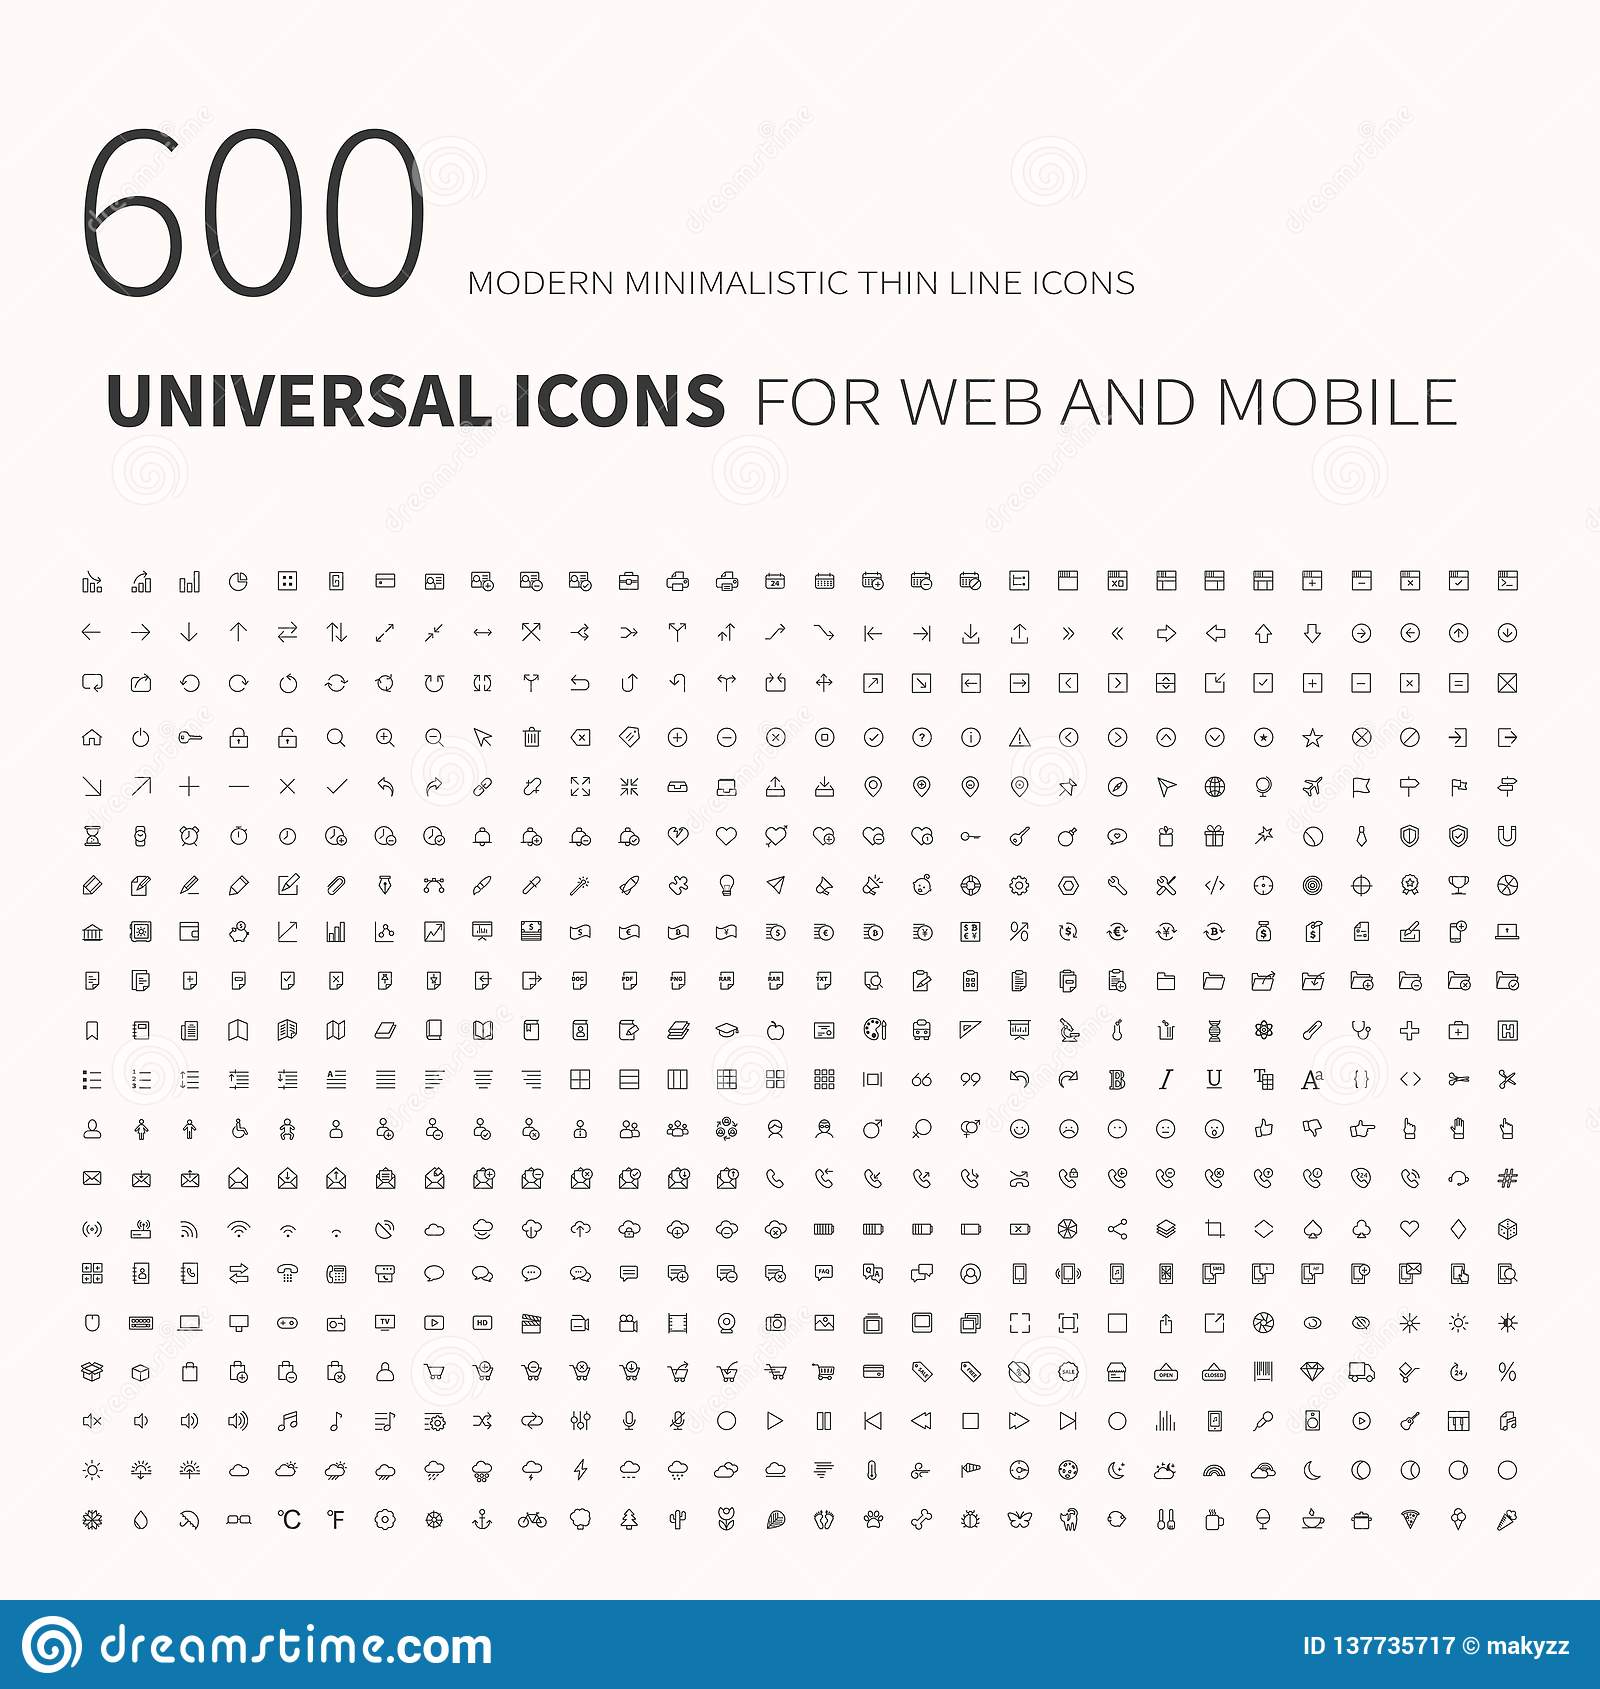 600 simple outline flat icons. Set of universal icons for website and mobile. Flat vector